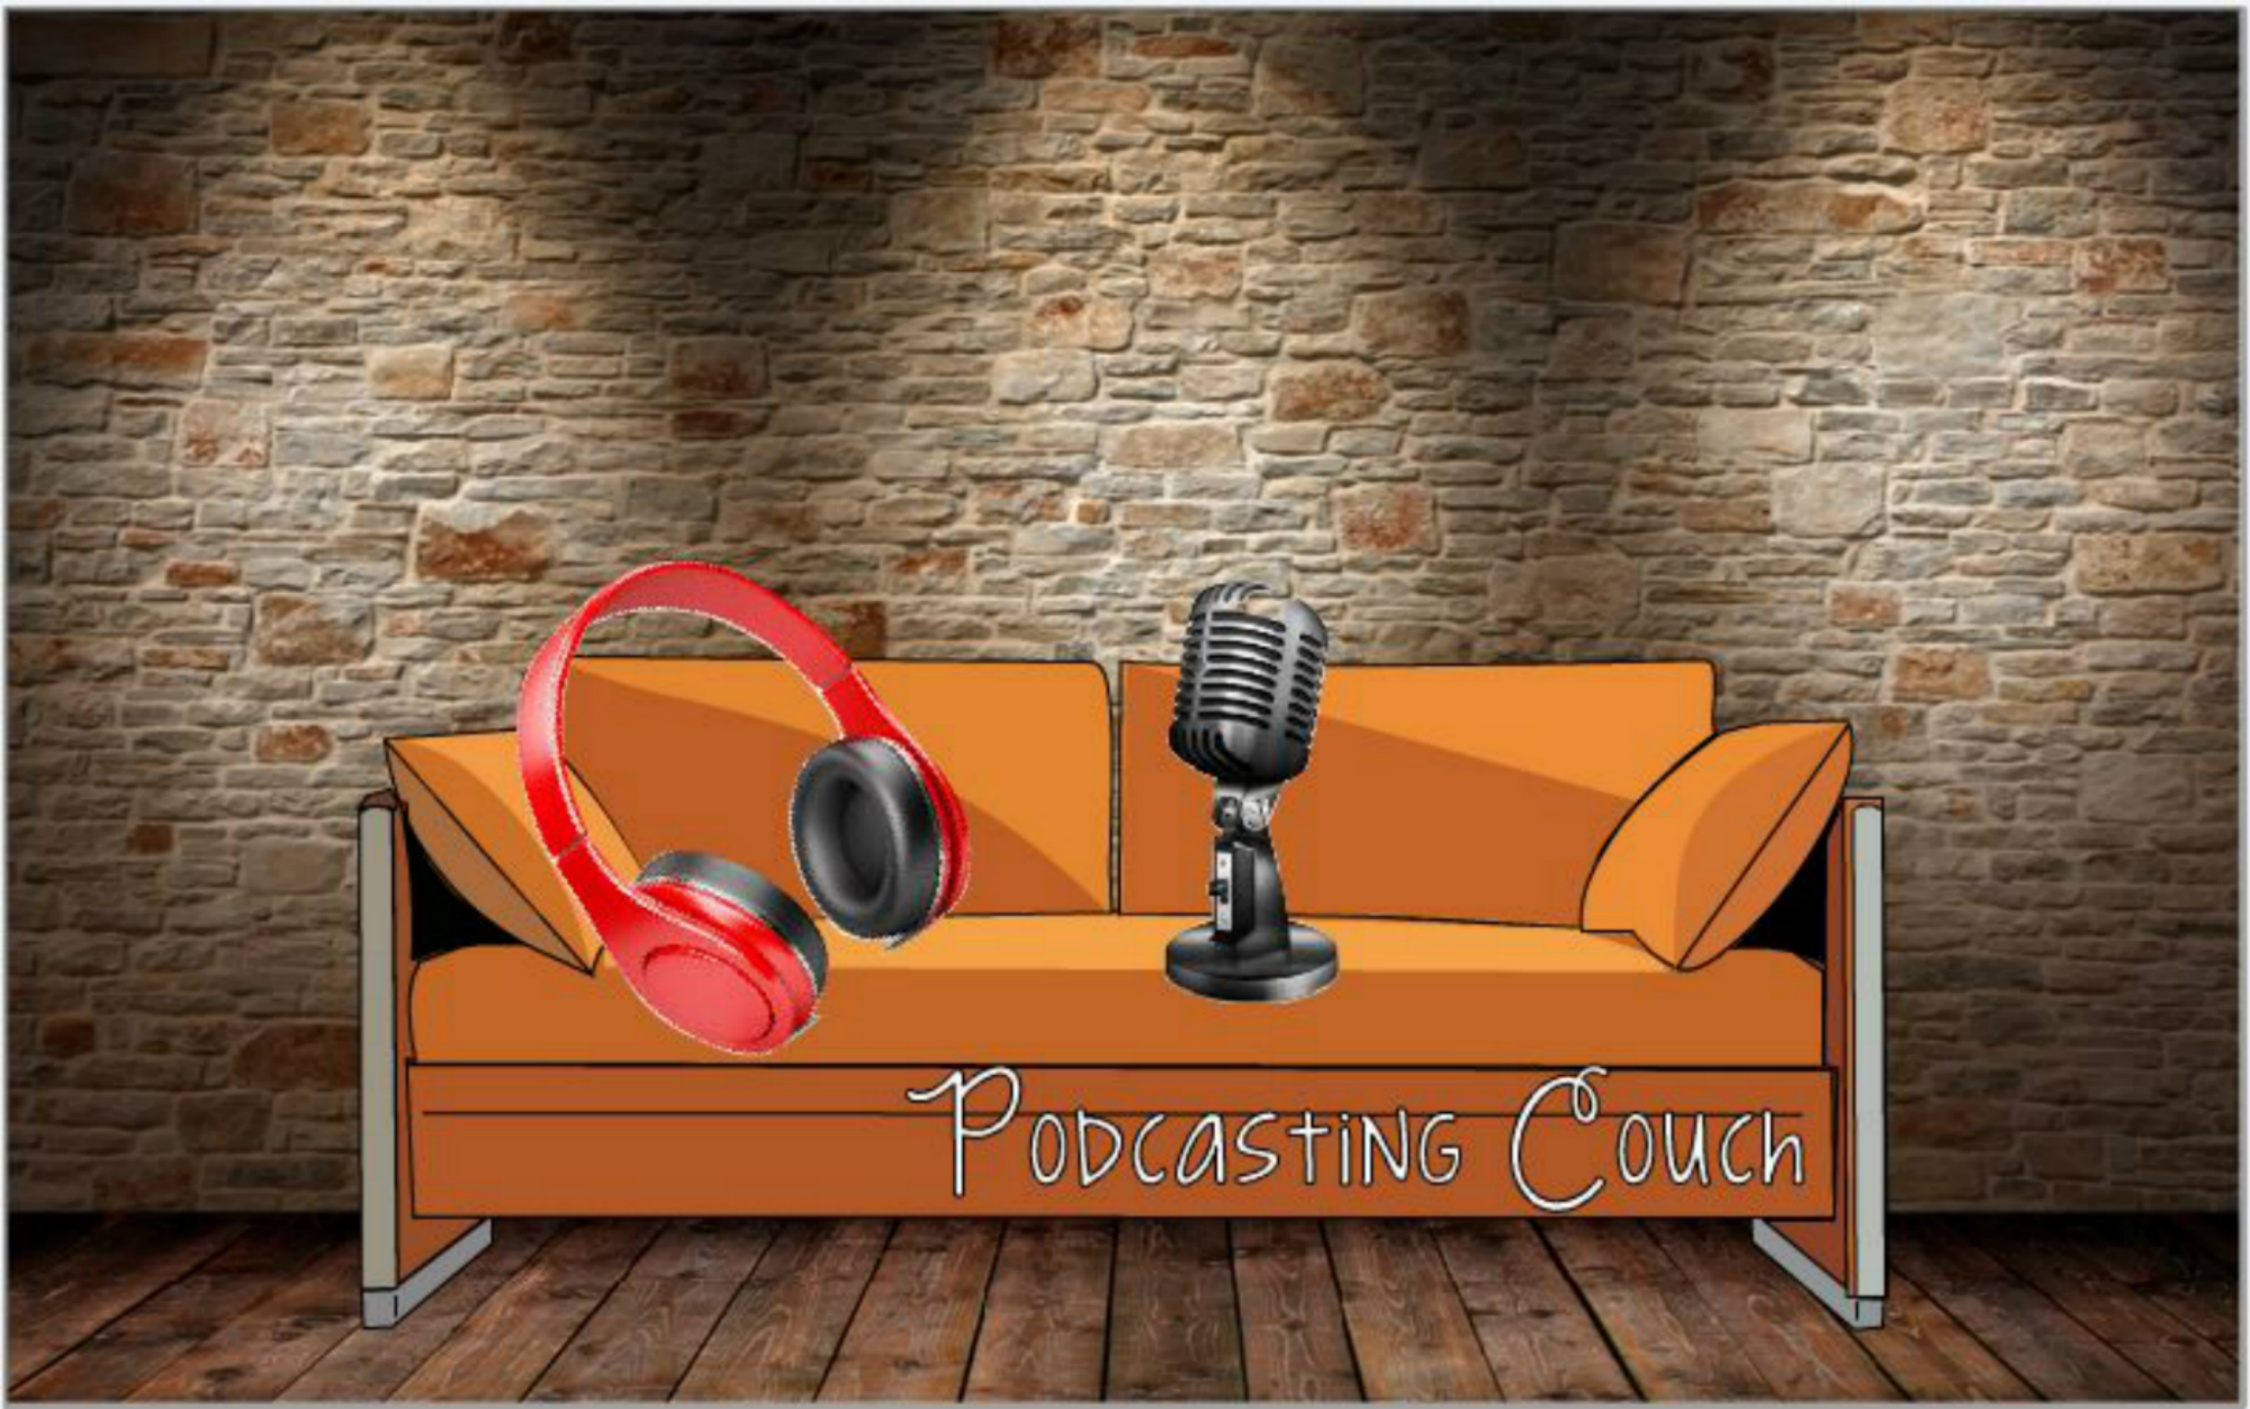 Podcasting Couch